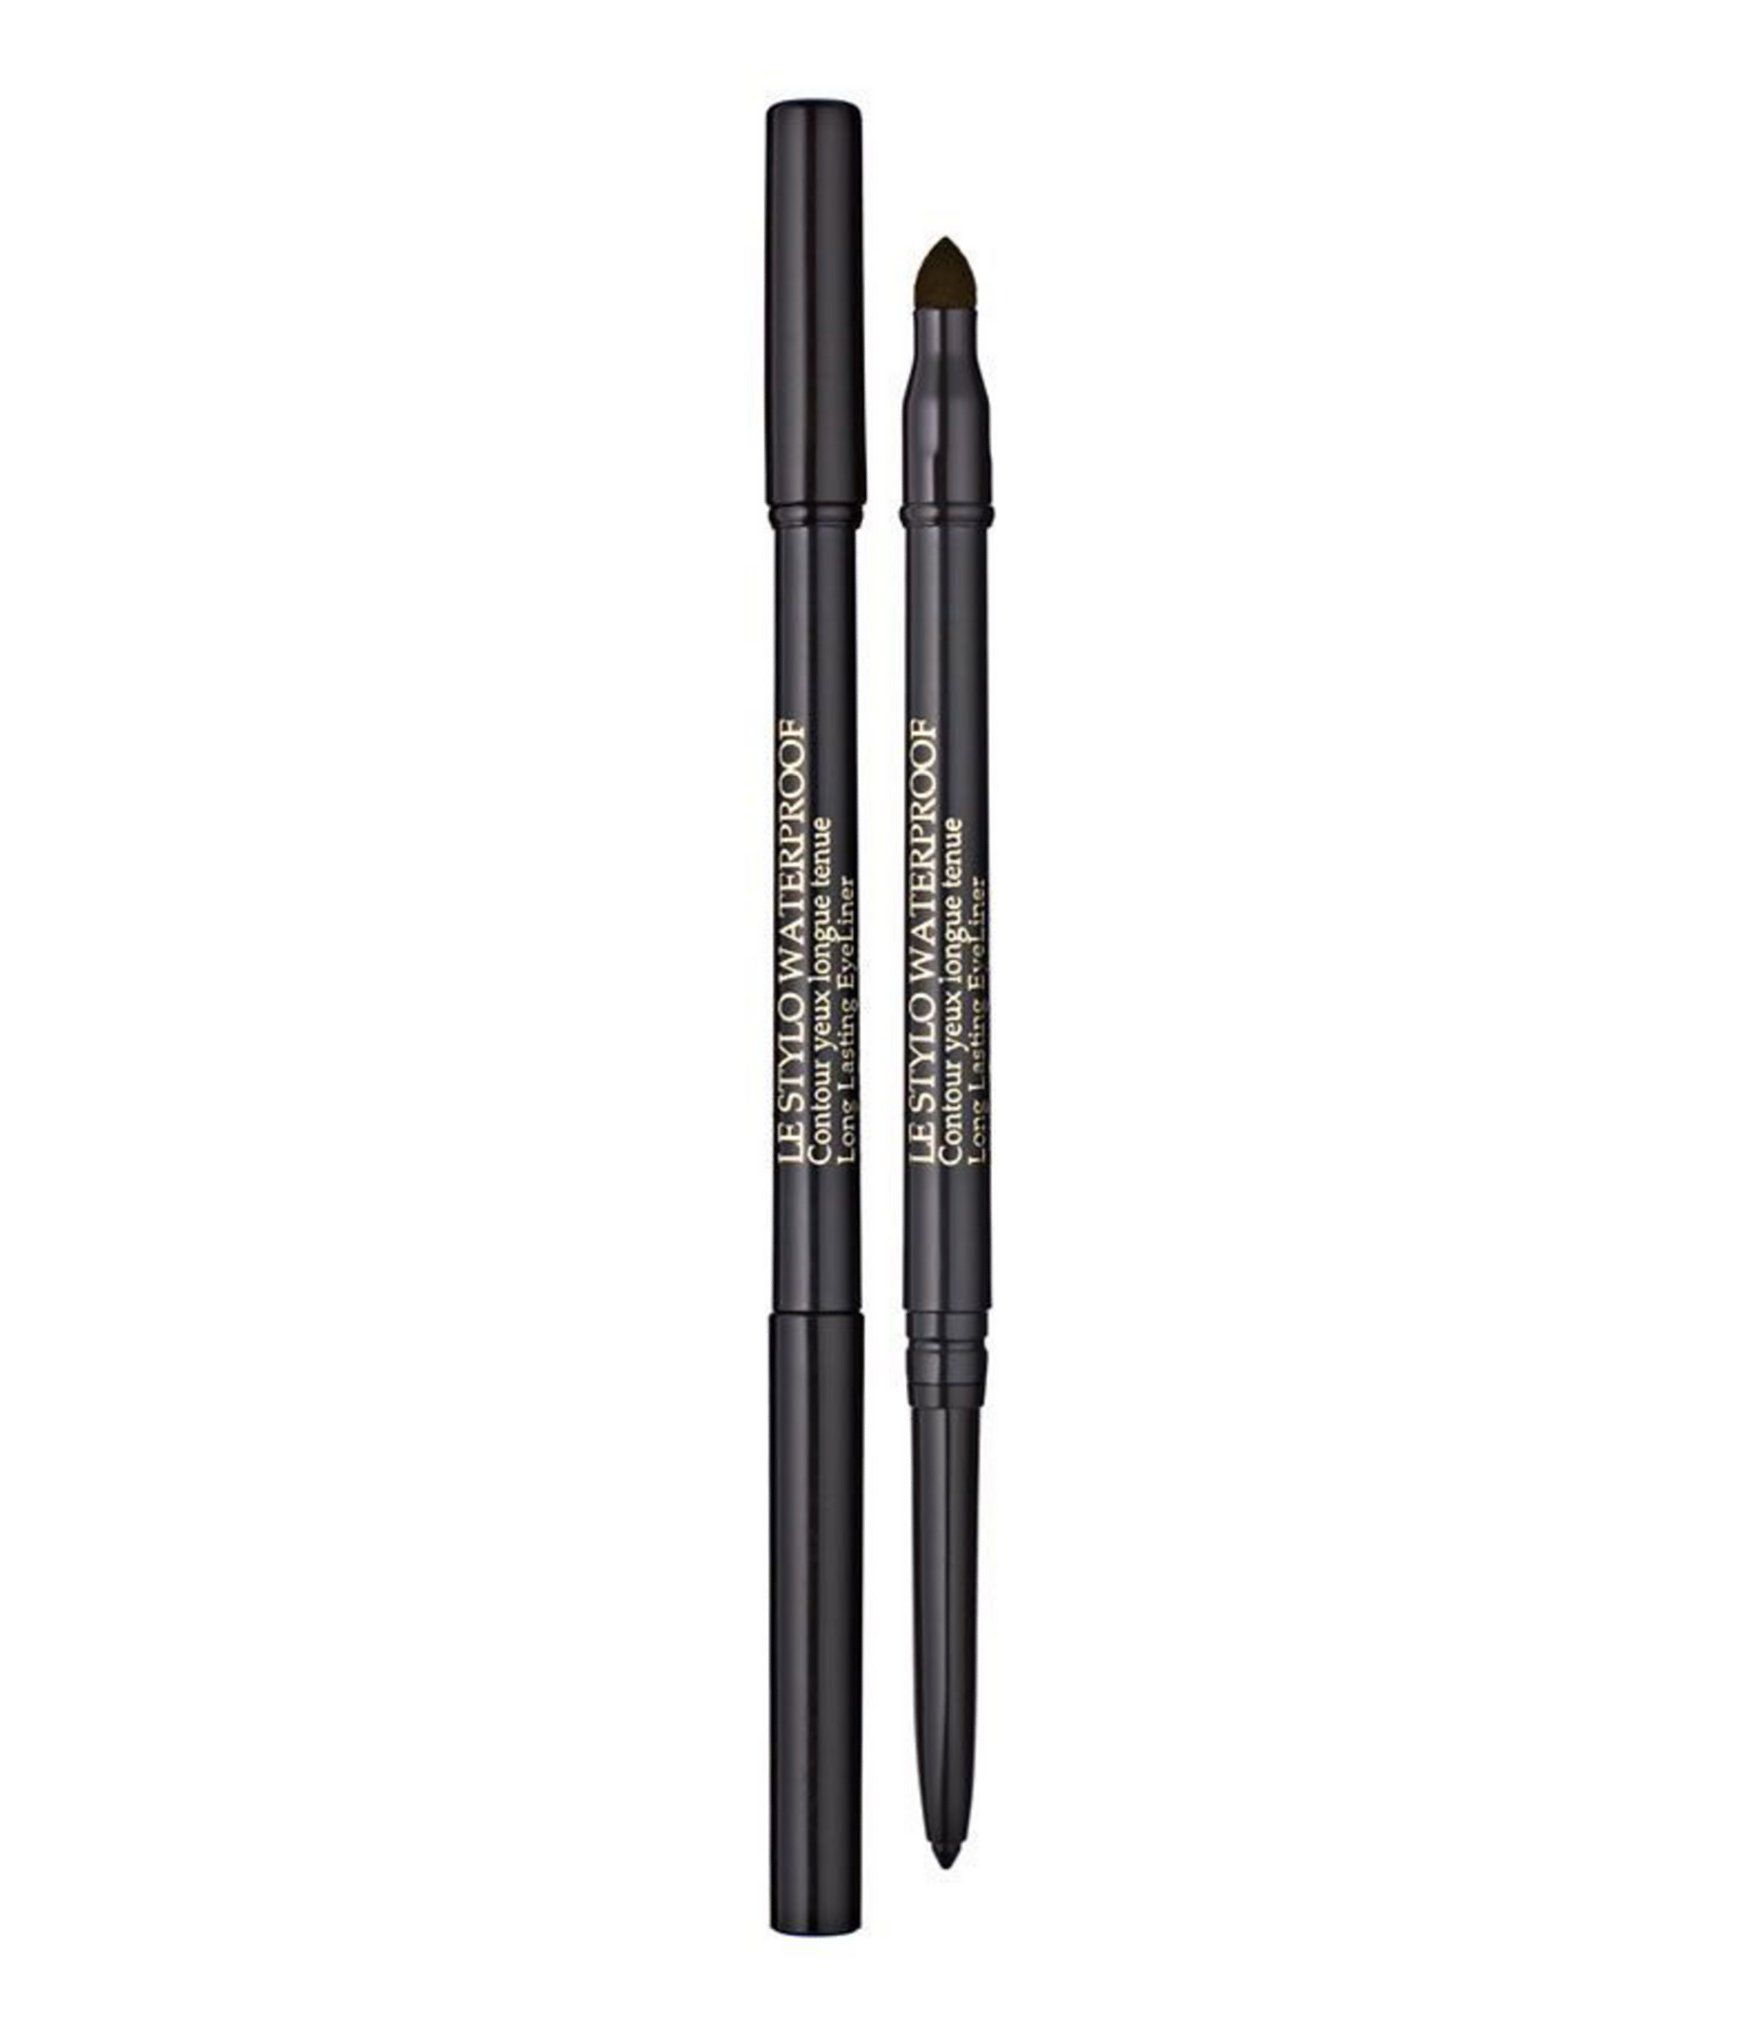 Eyeliner that is here to stay. Formulated to withstand everything from tears to inclement weather, this waterproof eyeliner has a unique twist tip that never needs sharpening. Won't skip, smudge or streak. Trace upper and lower lash line to bring a splash of color to the eyes.